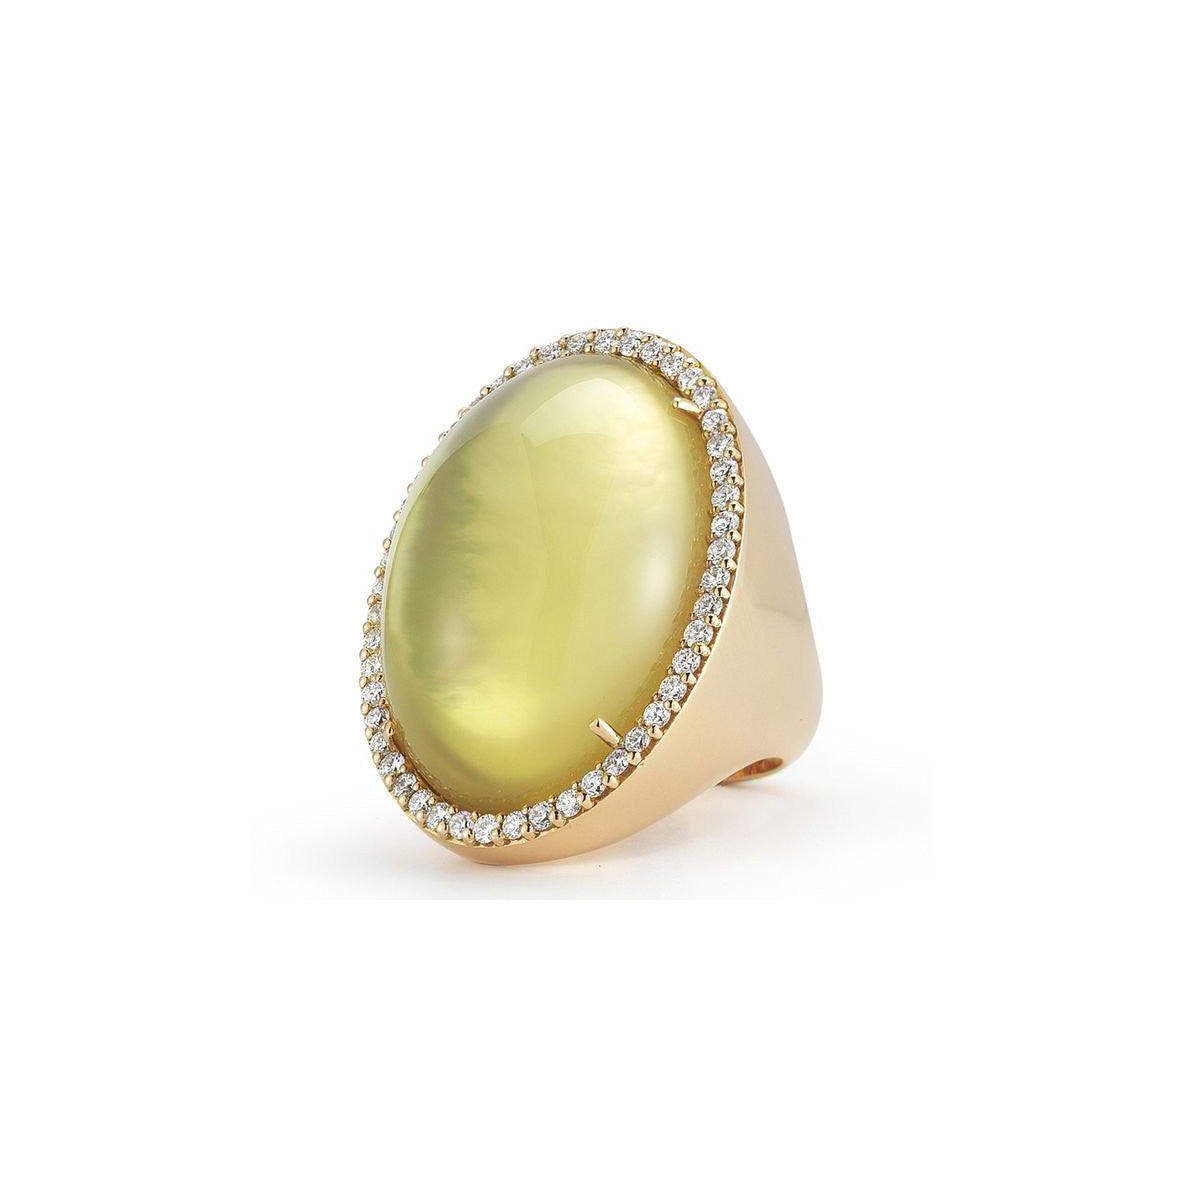 18K Rose Gold Large Oval Ring with Diamonds, Lemon Quartz & Mother of Pearl